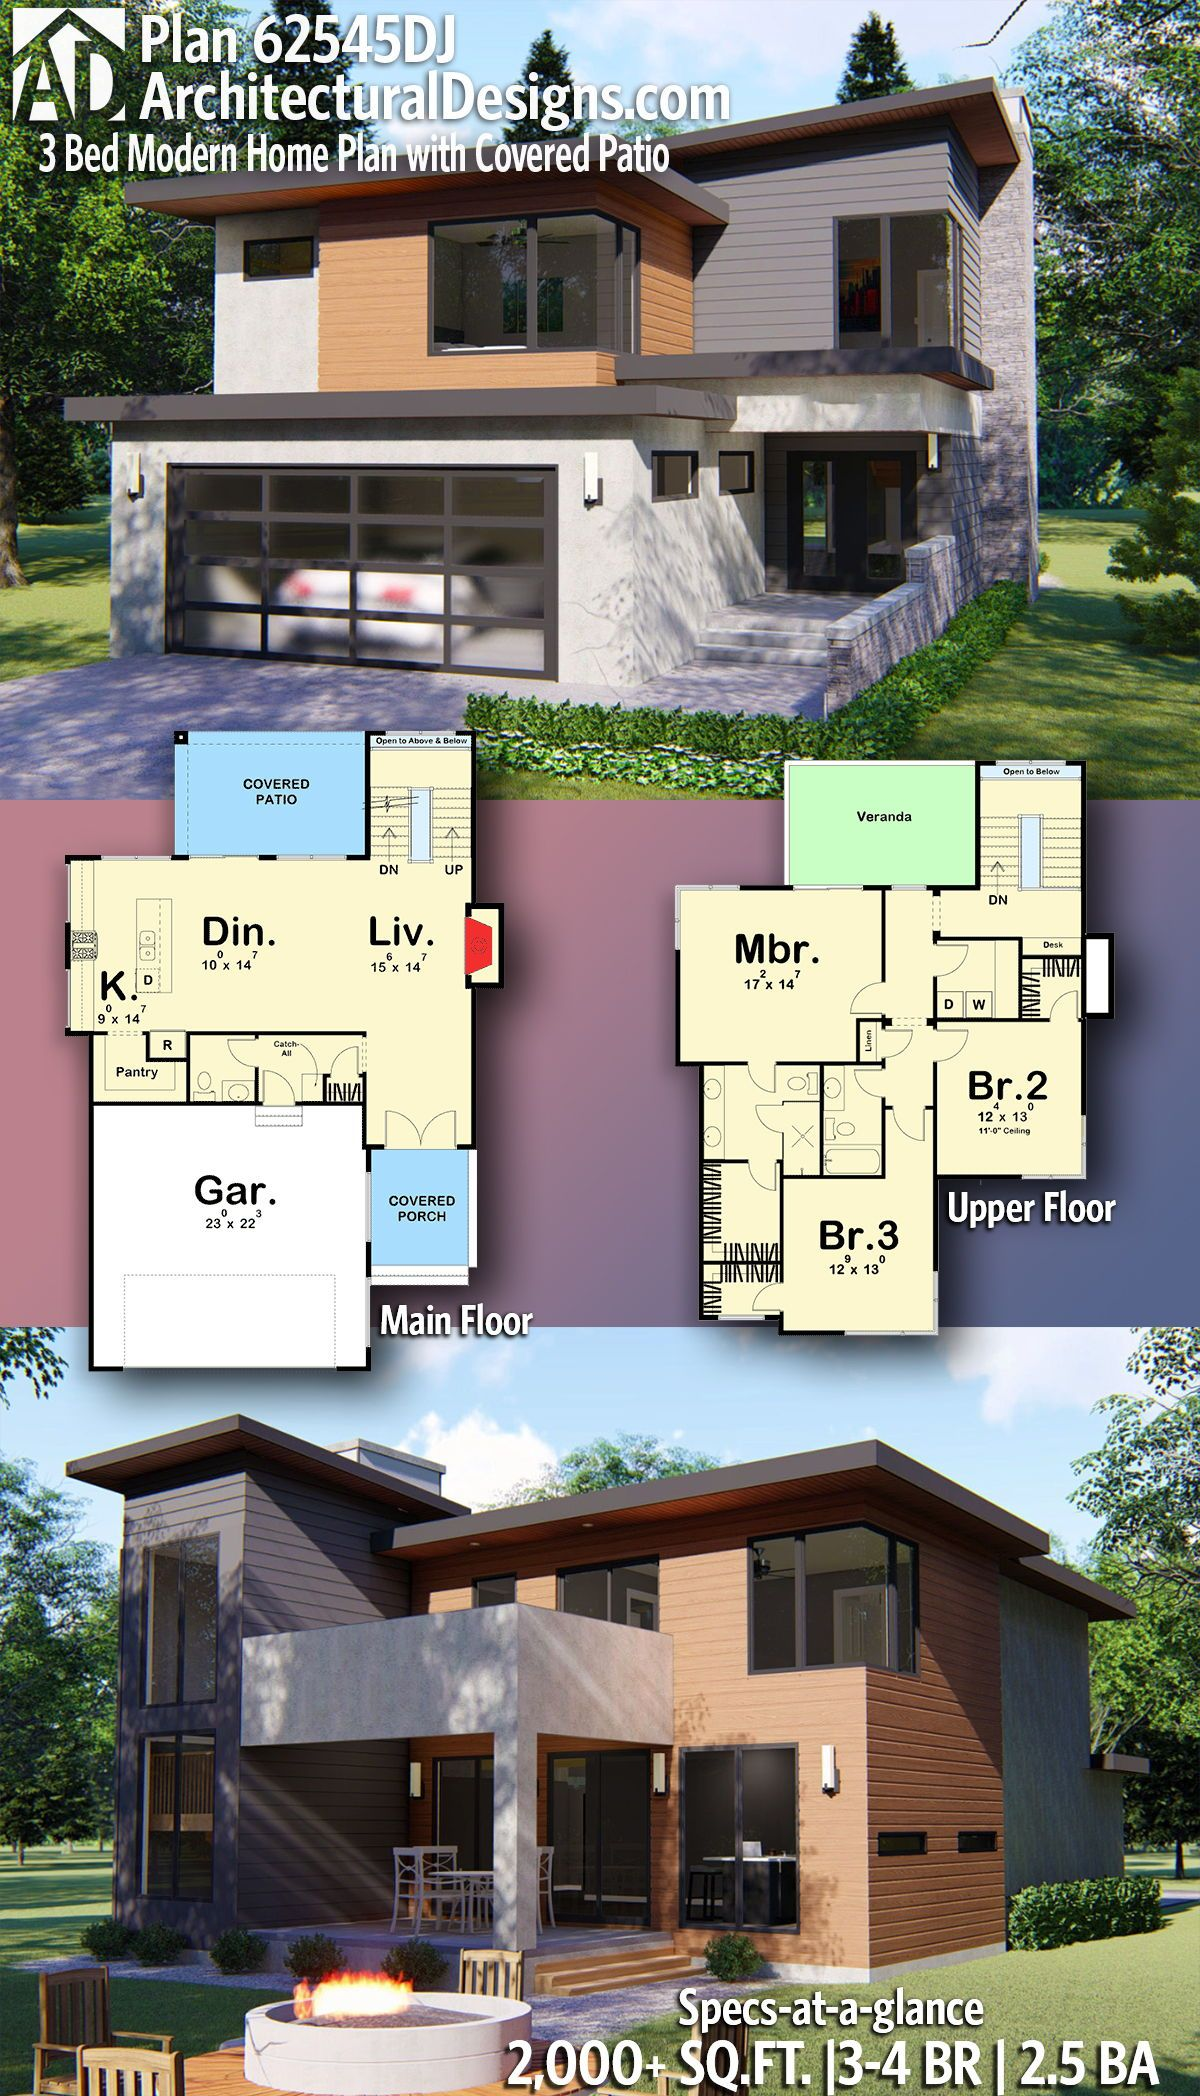 Plan 62545dj 3 Bed Modern Home Plan With Covered Patio House Plans Modern House Plans Modern House